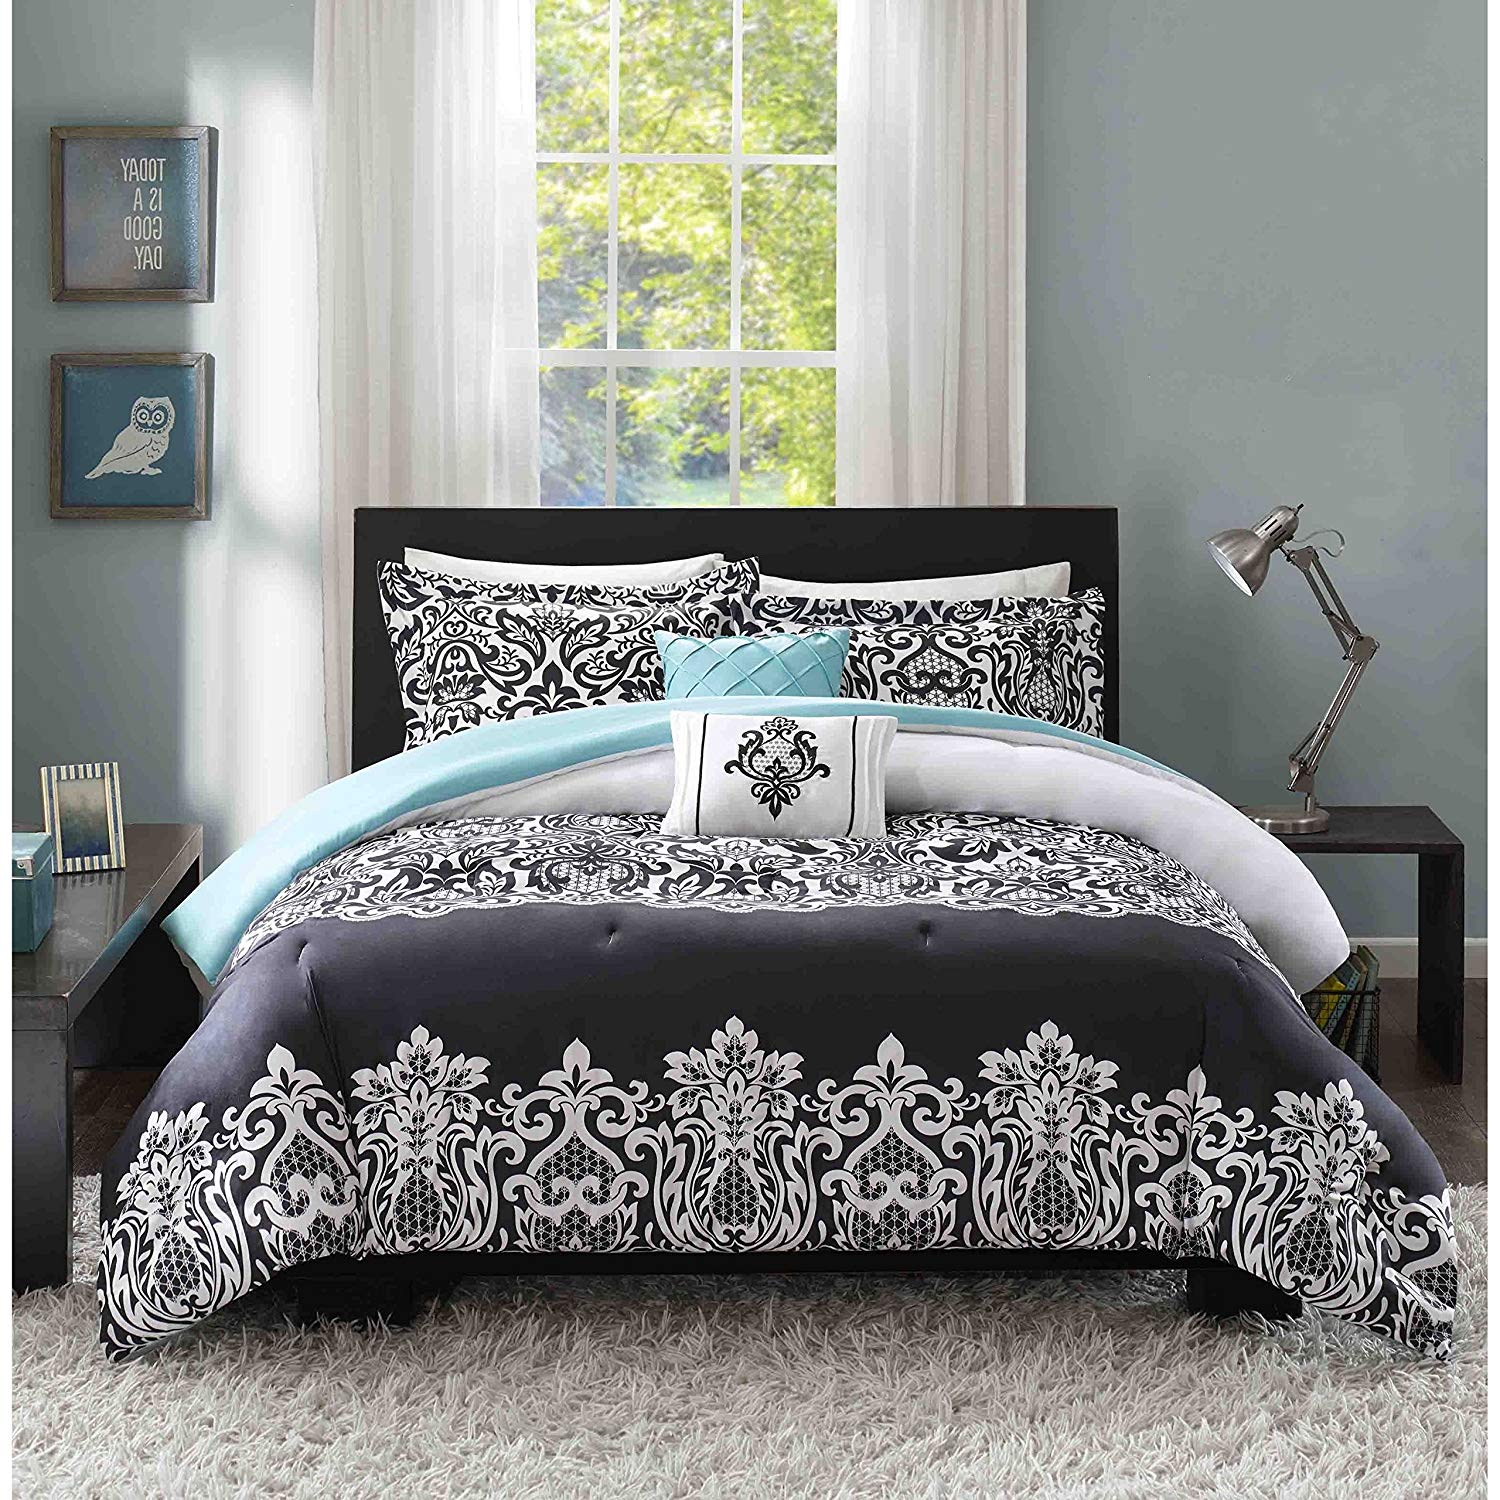 LO 4 Piece Girls Black White Damask Jeweled Comforter Set Twin Twin Xl, Dark Black Geometric Printed Floral Adult Bedding Master Bedroom Reversible Solid Color Casual Modern, Polyester